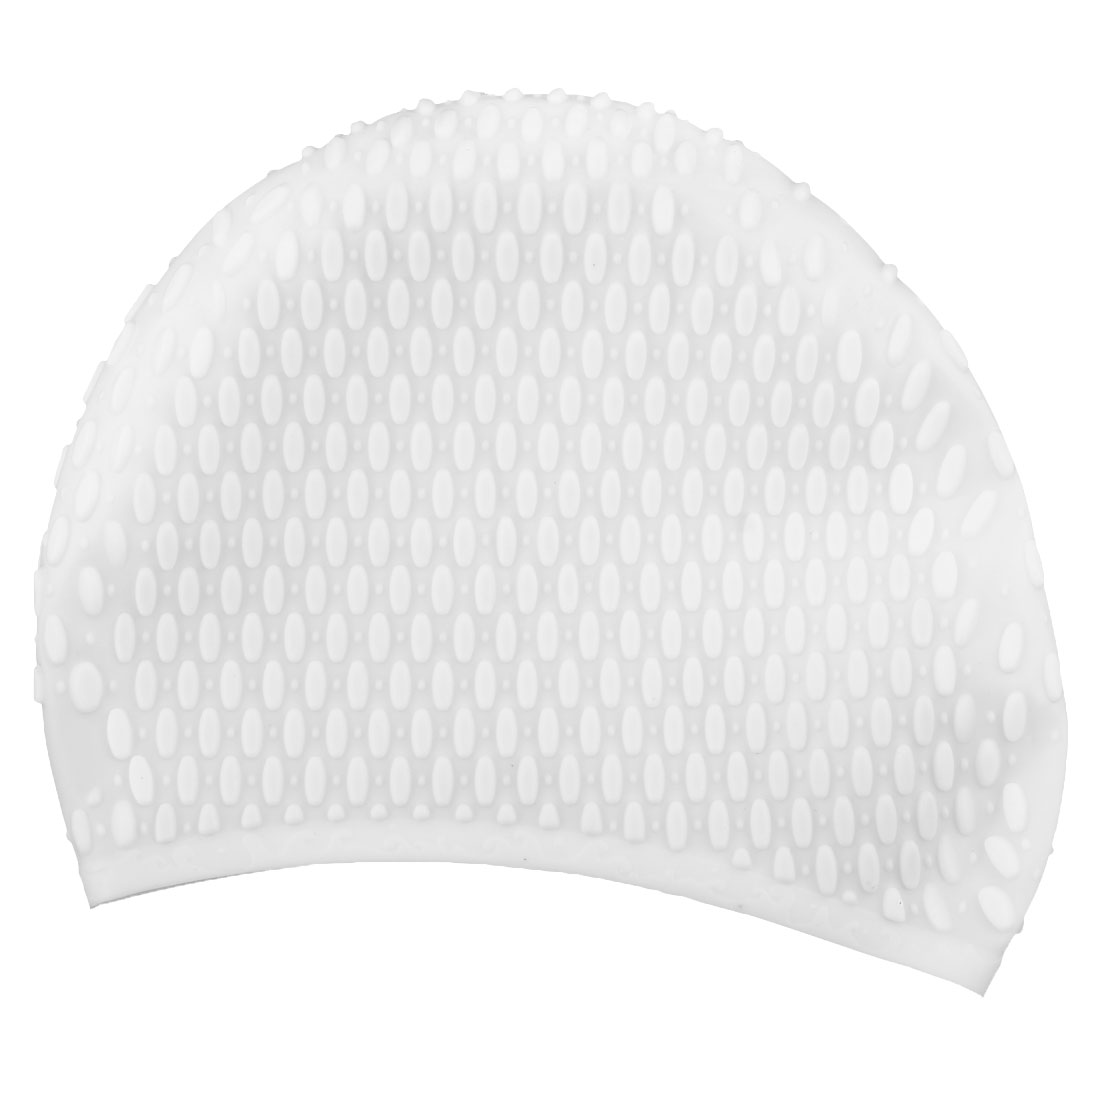 Adult Unisex Silicone Dome Shape Anti-slip Elastic Swimming Cap Underwater Bathing Hat White